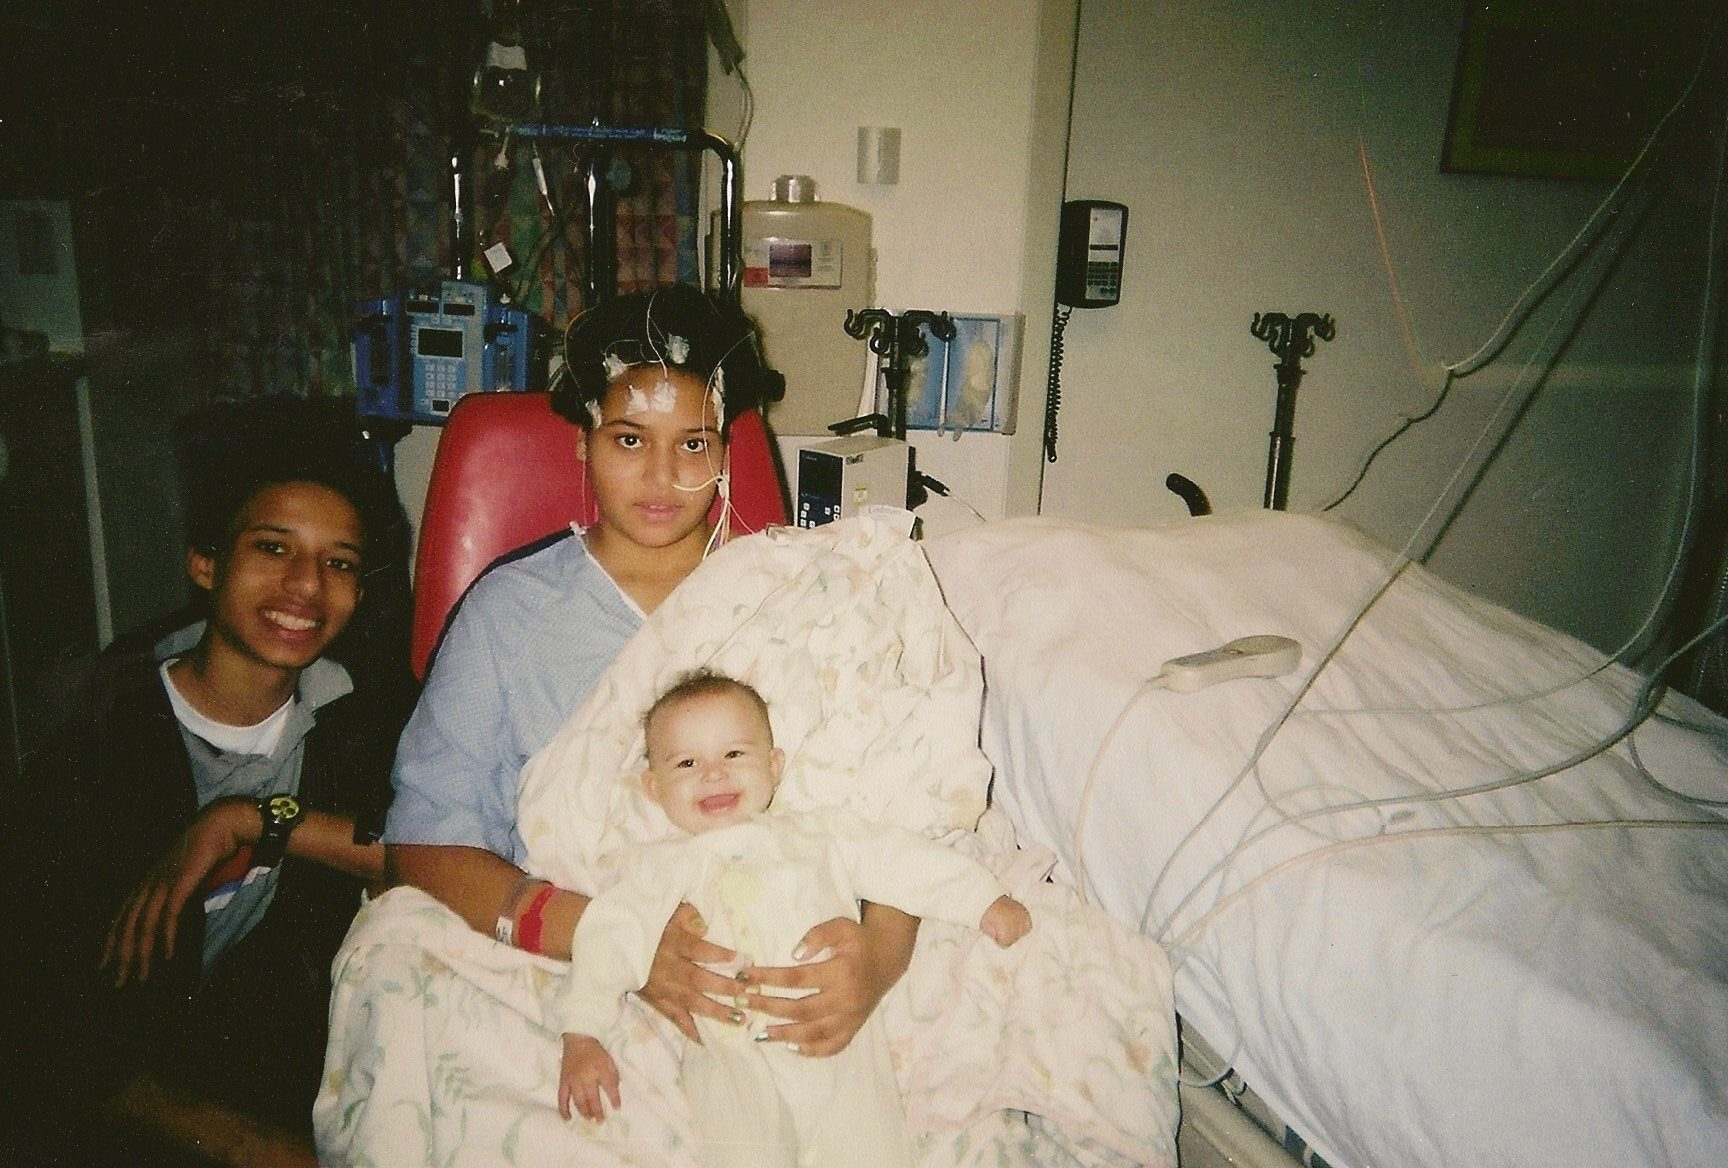 Chaunell in the hospital with Cordell and baby Jameelah